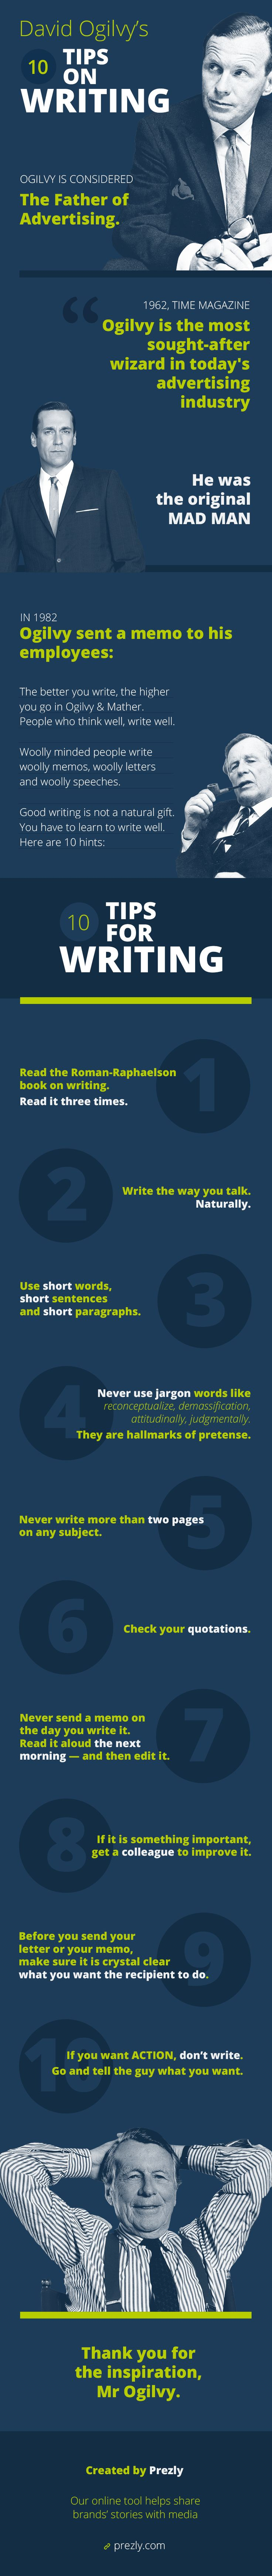 prezly_com-infographic-10tipsforwriting